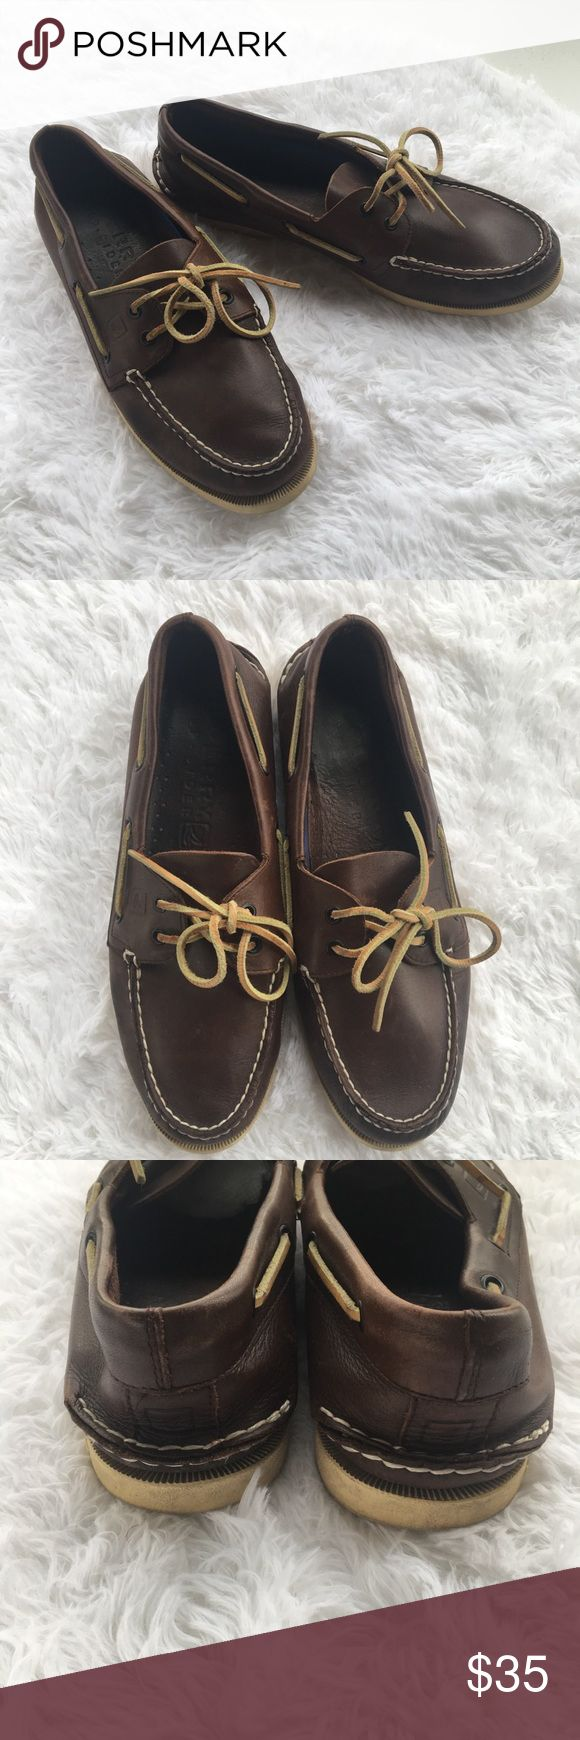 Men's Sperry Top Sider Boat Shoe Loafer Brown 11 Men's Sperry Top Sider Boat Shoe, size 11, chocolate brown. Excellent preowned condition. No box. Sperry Shoes Loafers & Slip-Ons